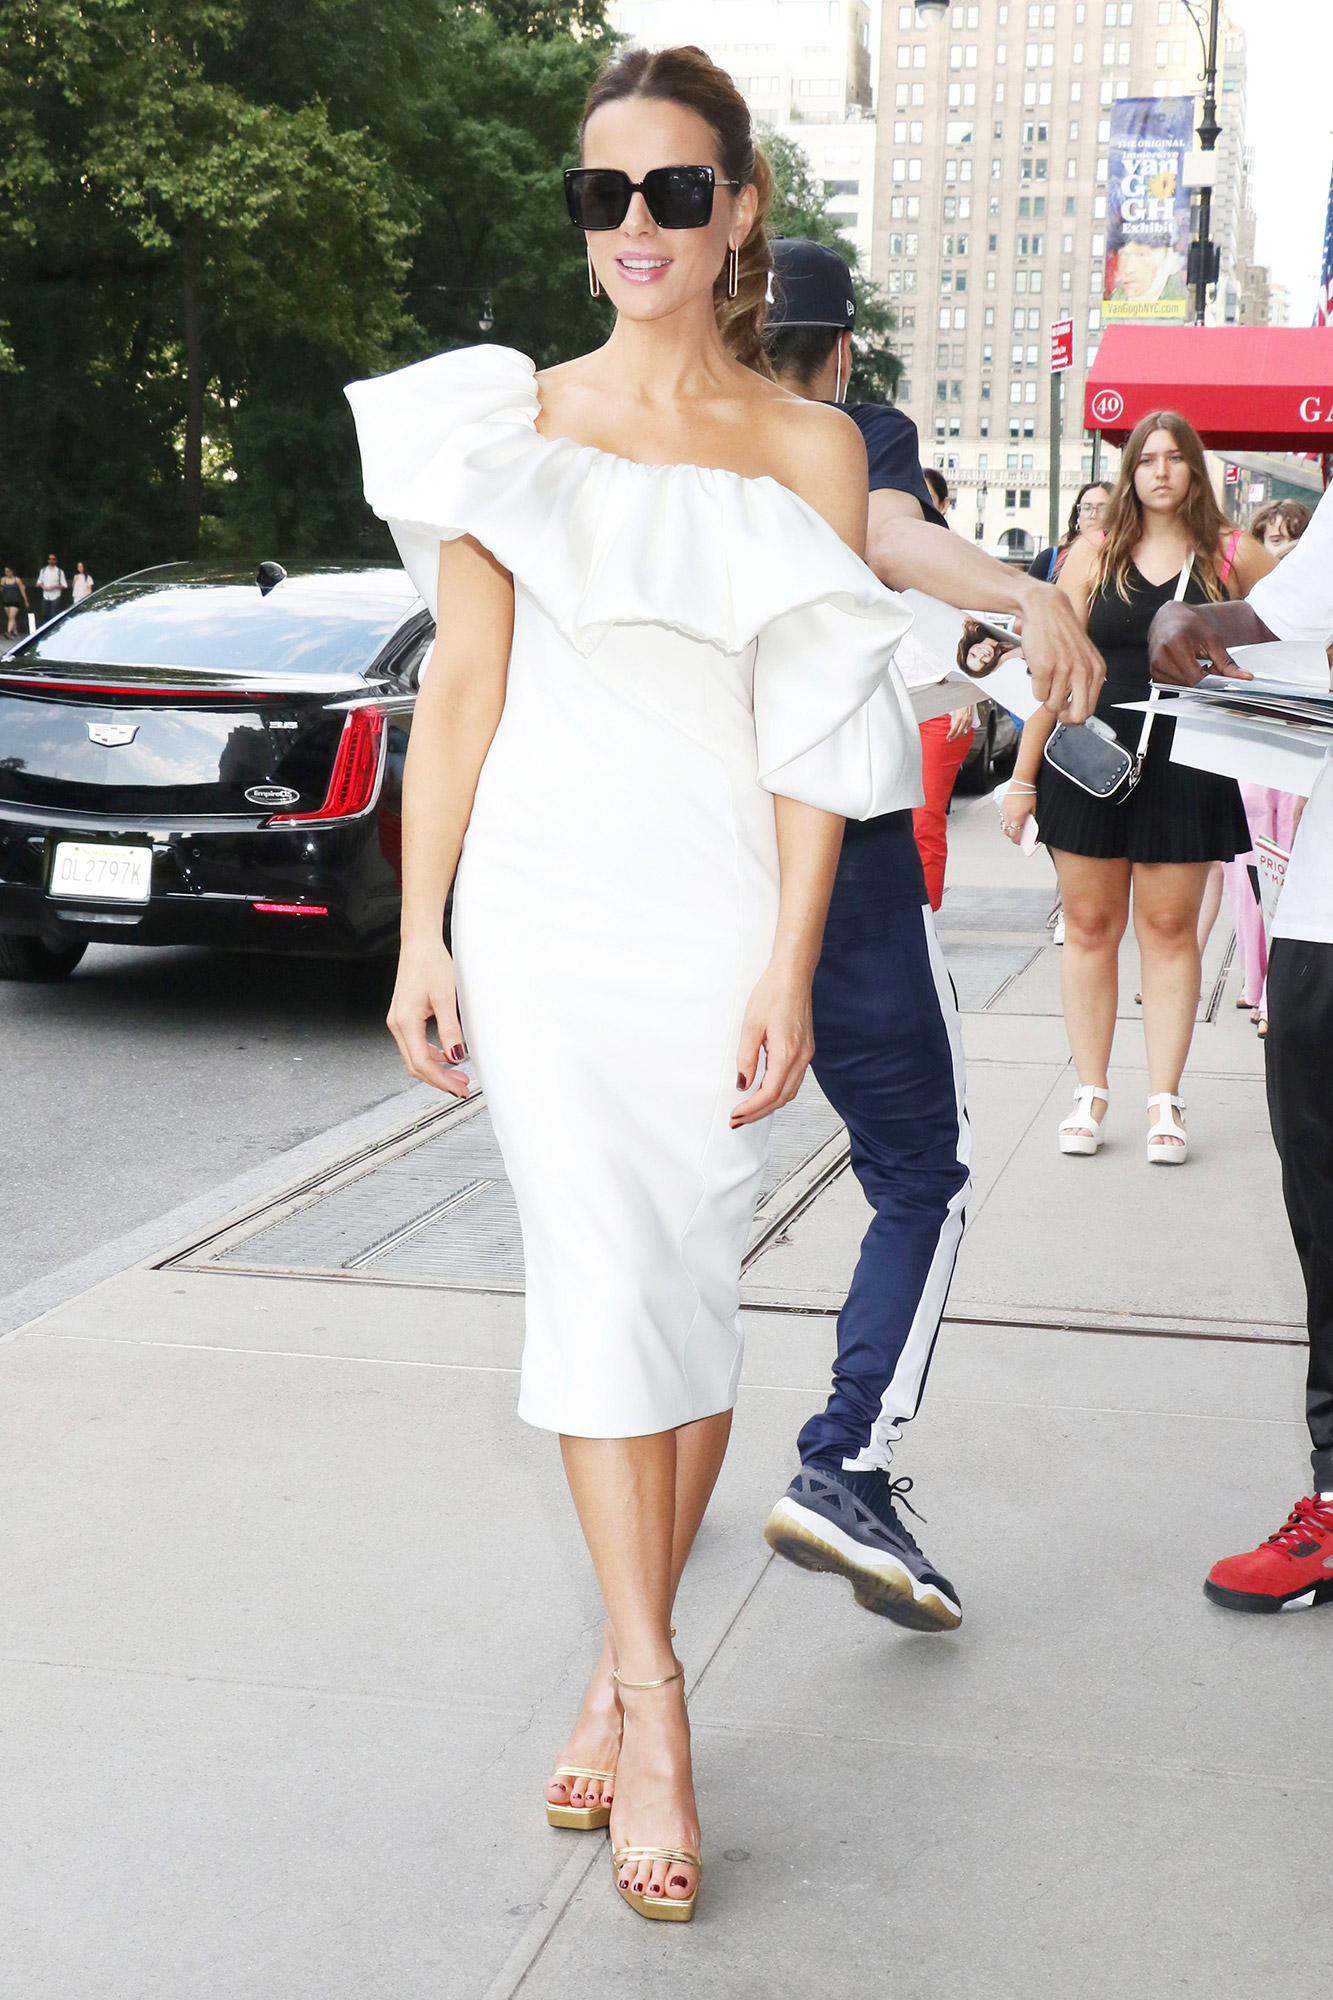 Kate Beckinsale arriving back from The Tonight Show Starring Jimmy Fallon in New York City on July 22, 2021